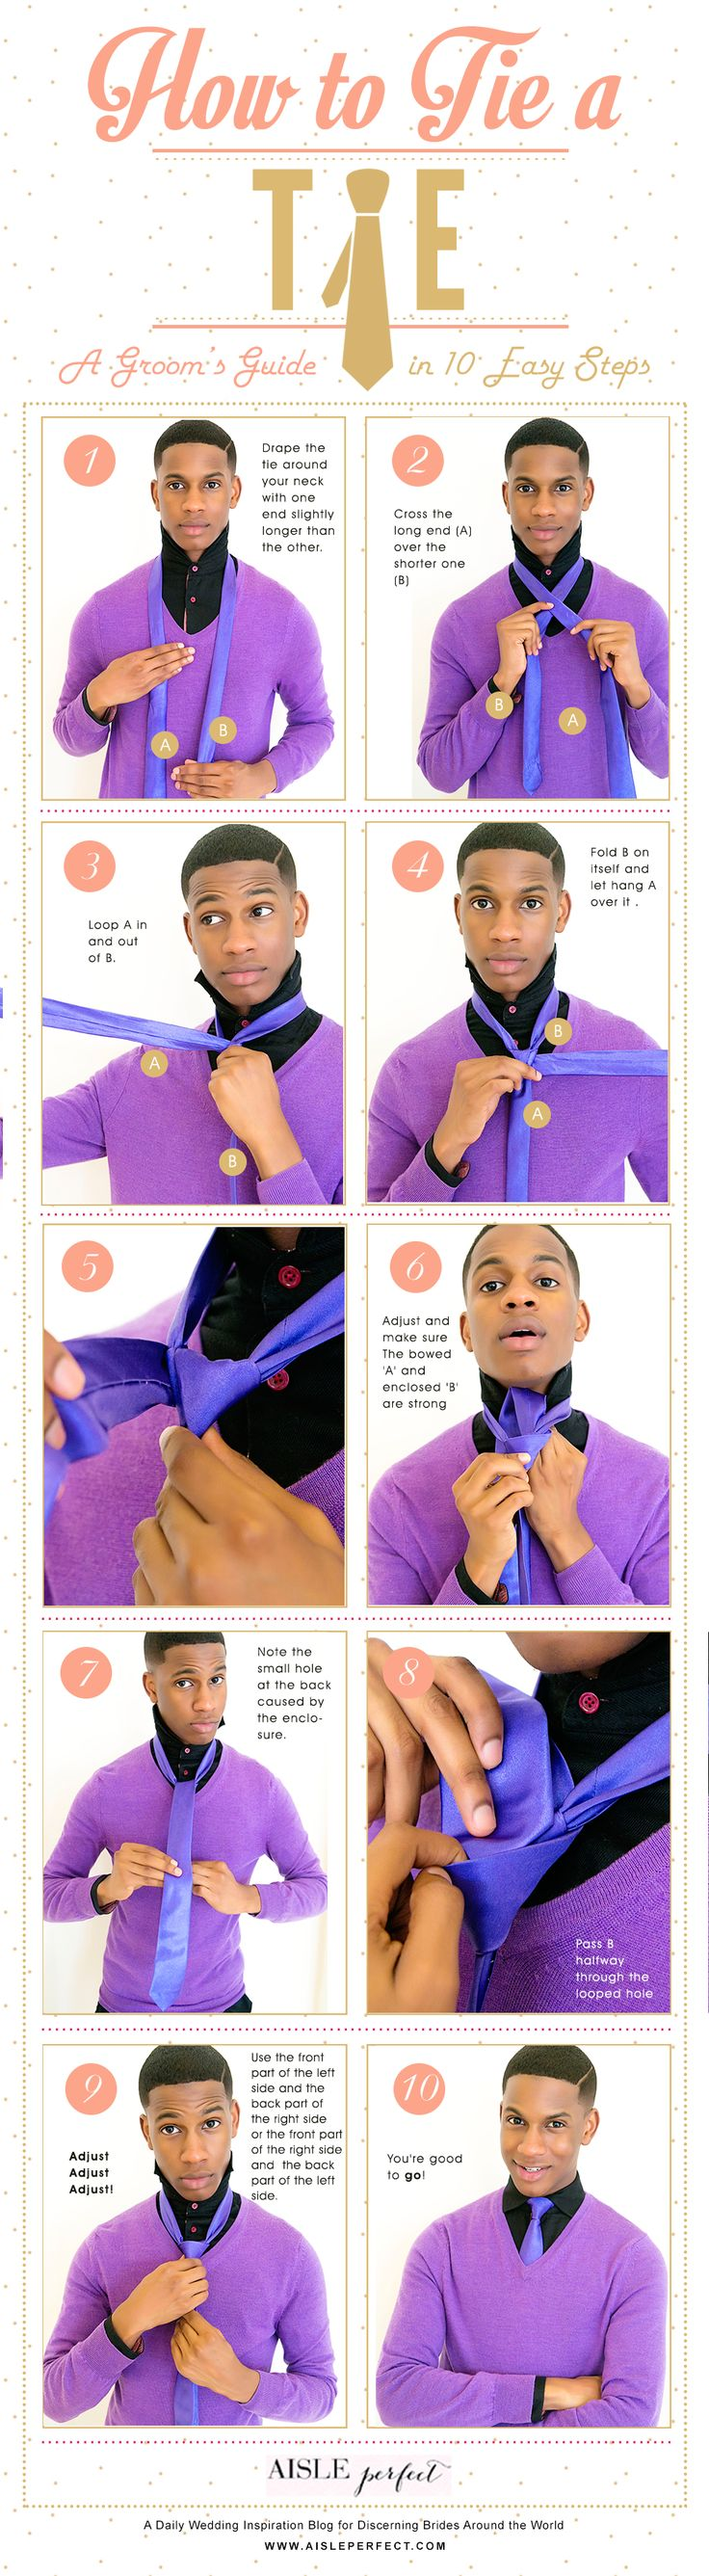 How To Tie A Tie Tutorial Aisle Perfect